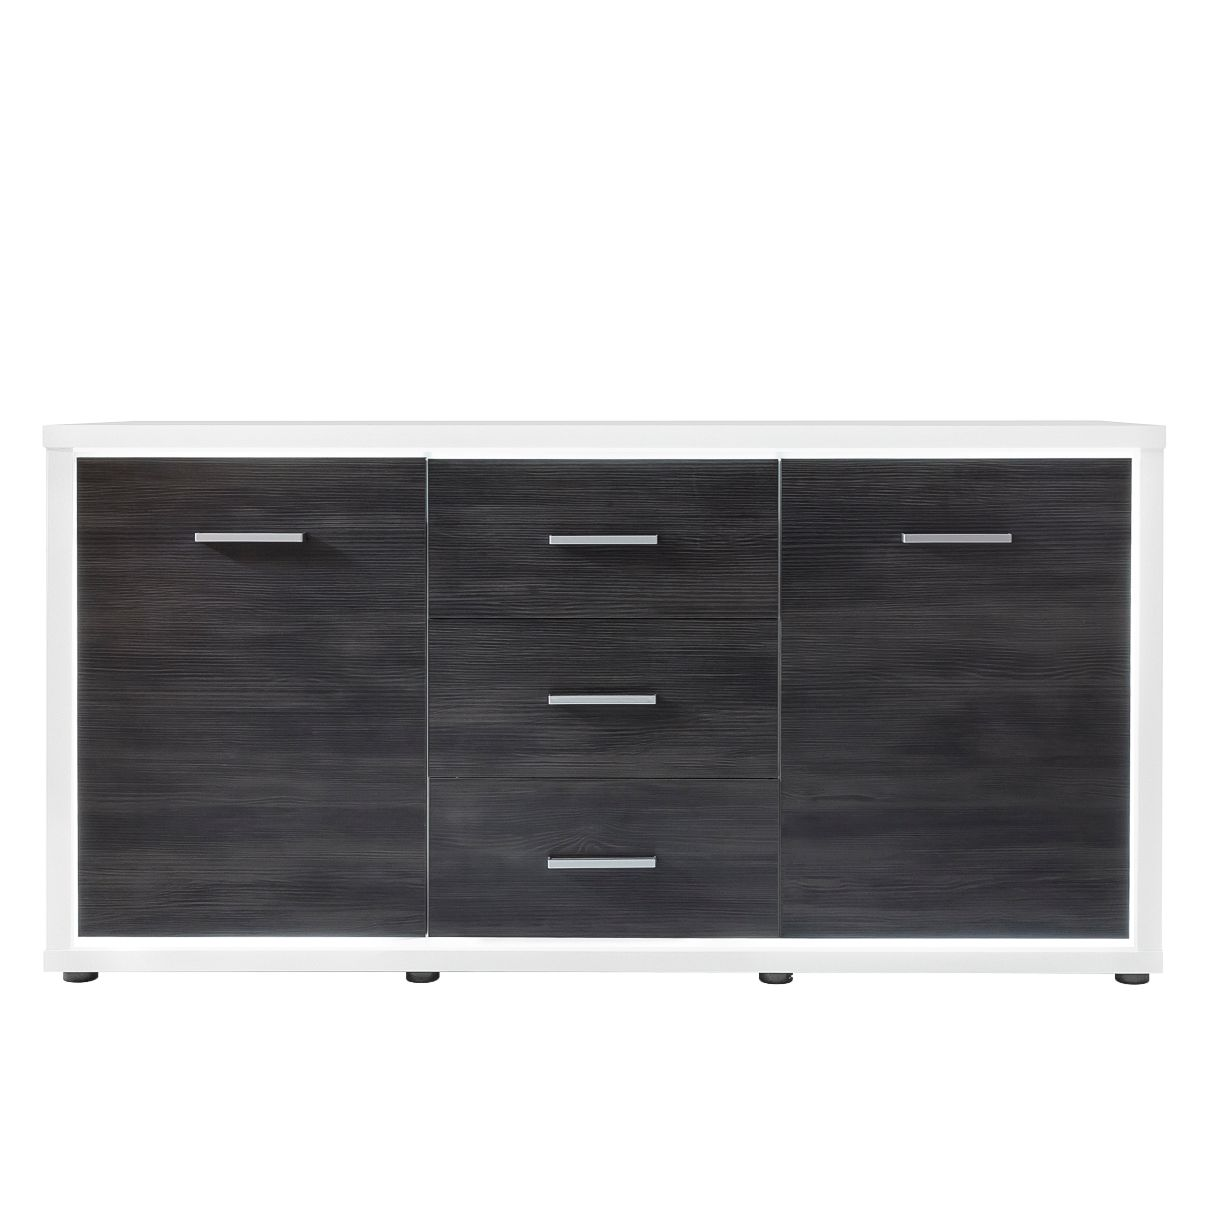 Sideboard Piorini (inkl. Beleuchtung)